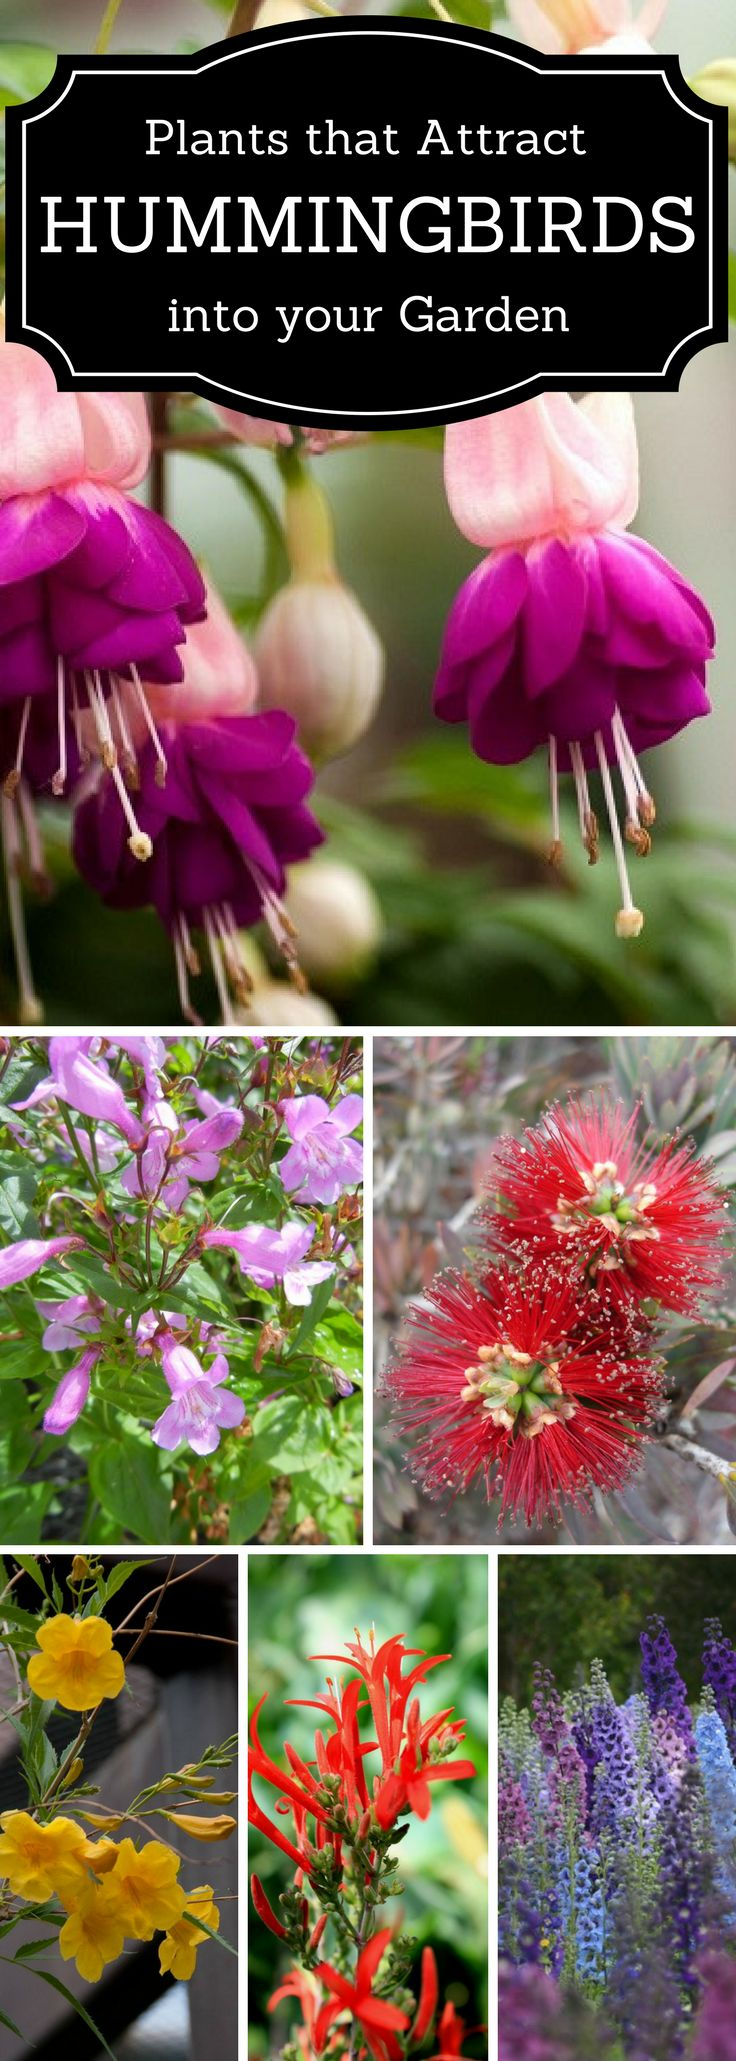 Love Hummingbirds, here are some plants that attract Hummers